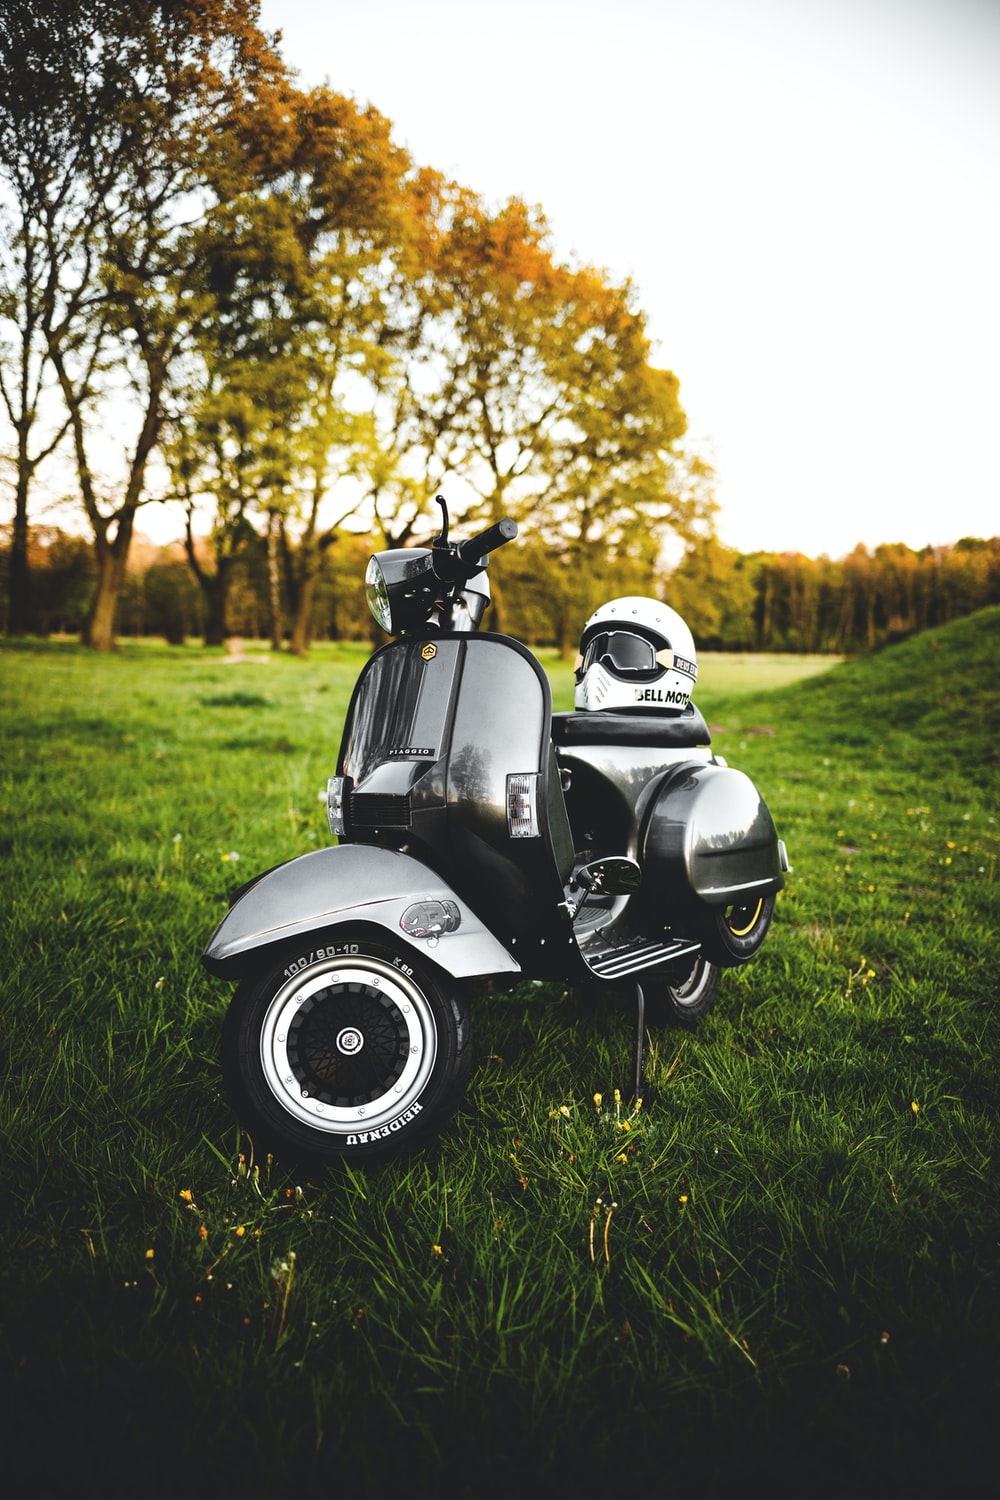 gray and black motor scooter on green grass field during daytime